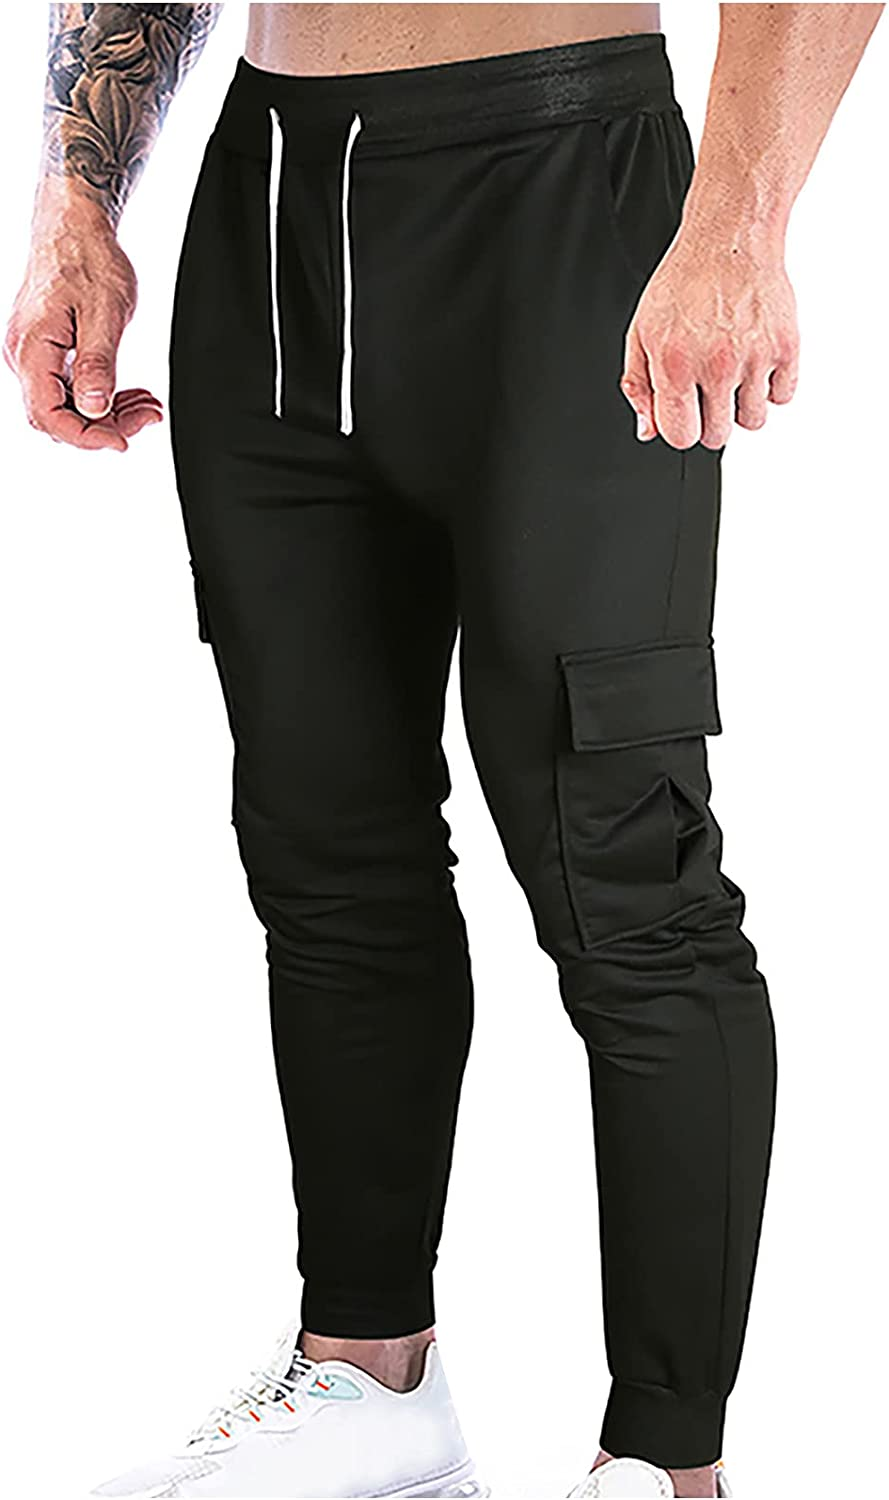 Men's Joggers Athletic Pants Casual Training Workout OFFicial site Tapered Swe Long Beach Mall